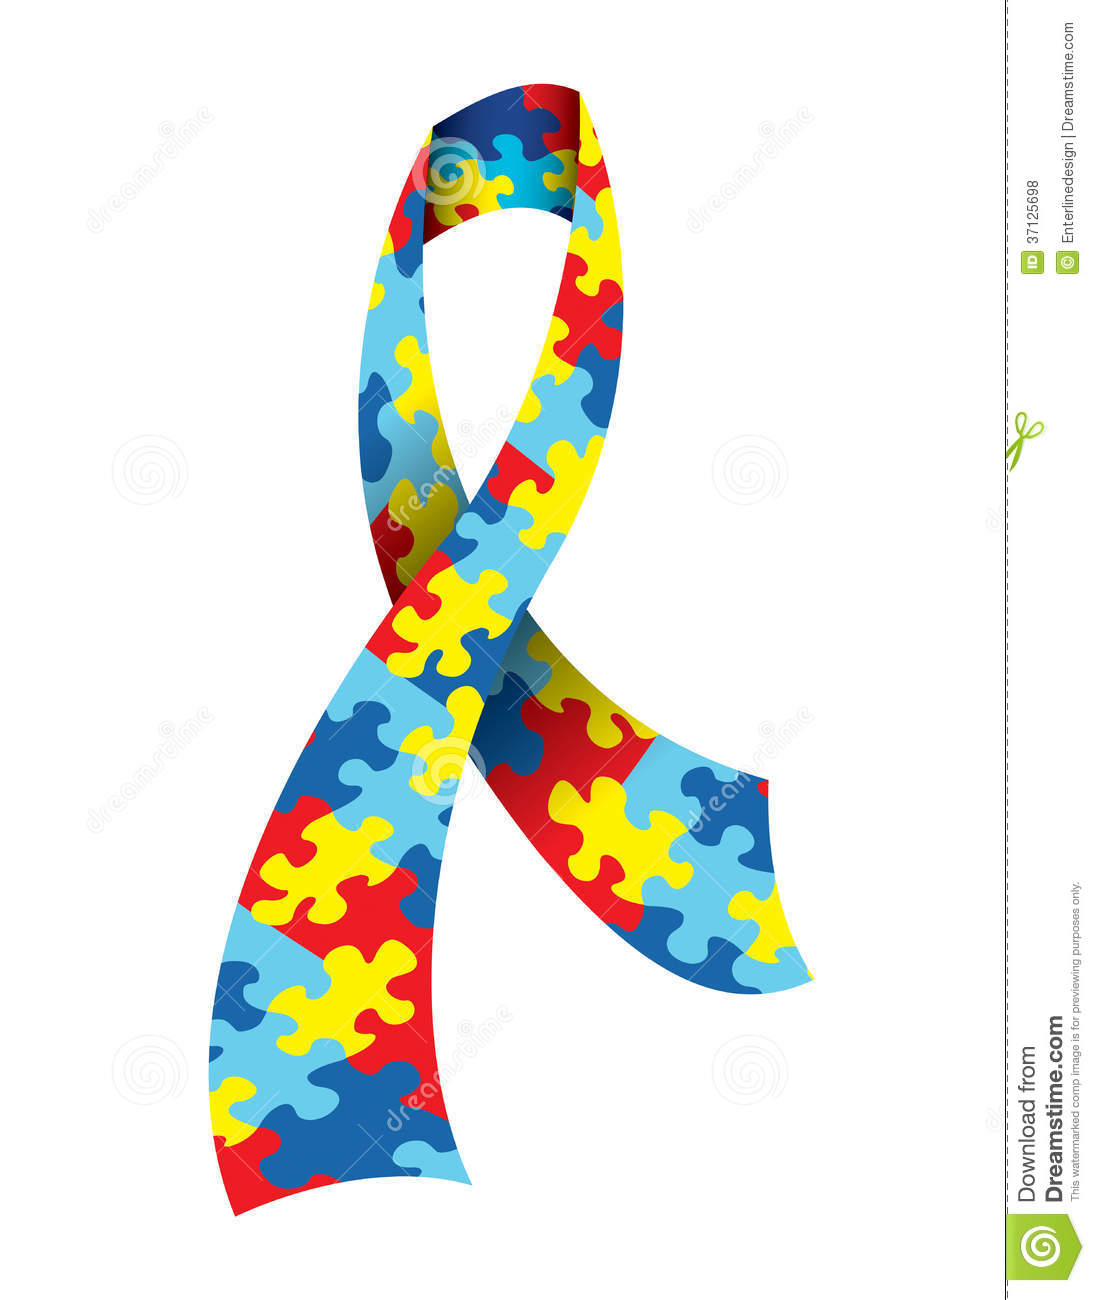 Autism ribbon clip art png free library Autism Awareness Ribbon Royalty Free Stock Photos - Image: 37125698 png free library